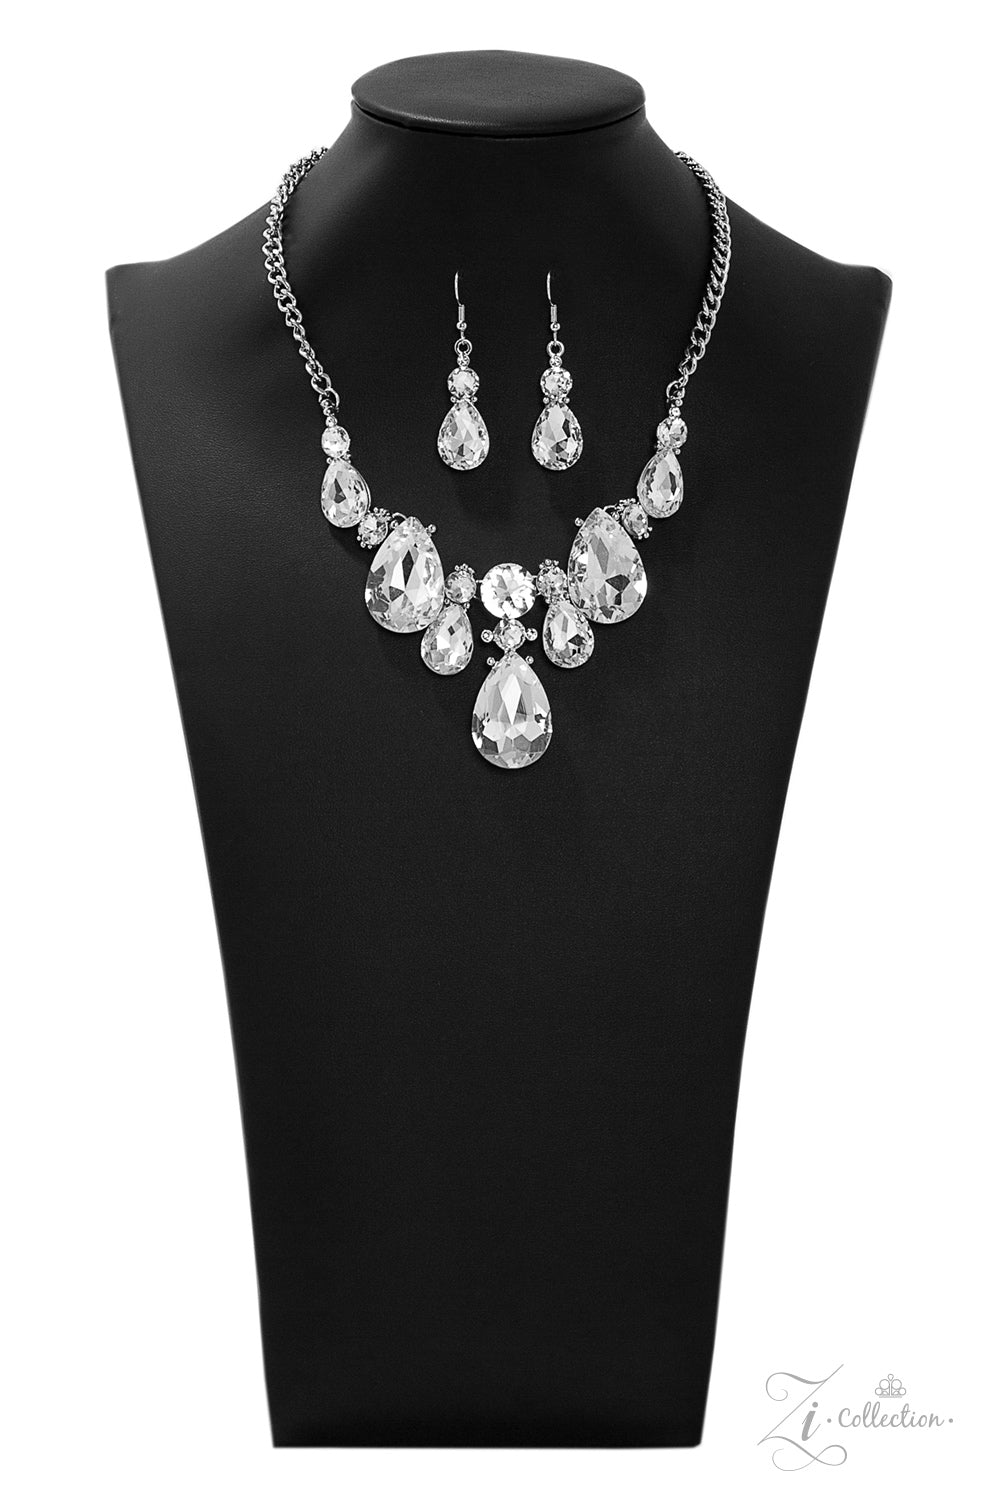 Reign - Silver with Teardrop Rhinestones Necklace - 2019 Zi Collection